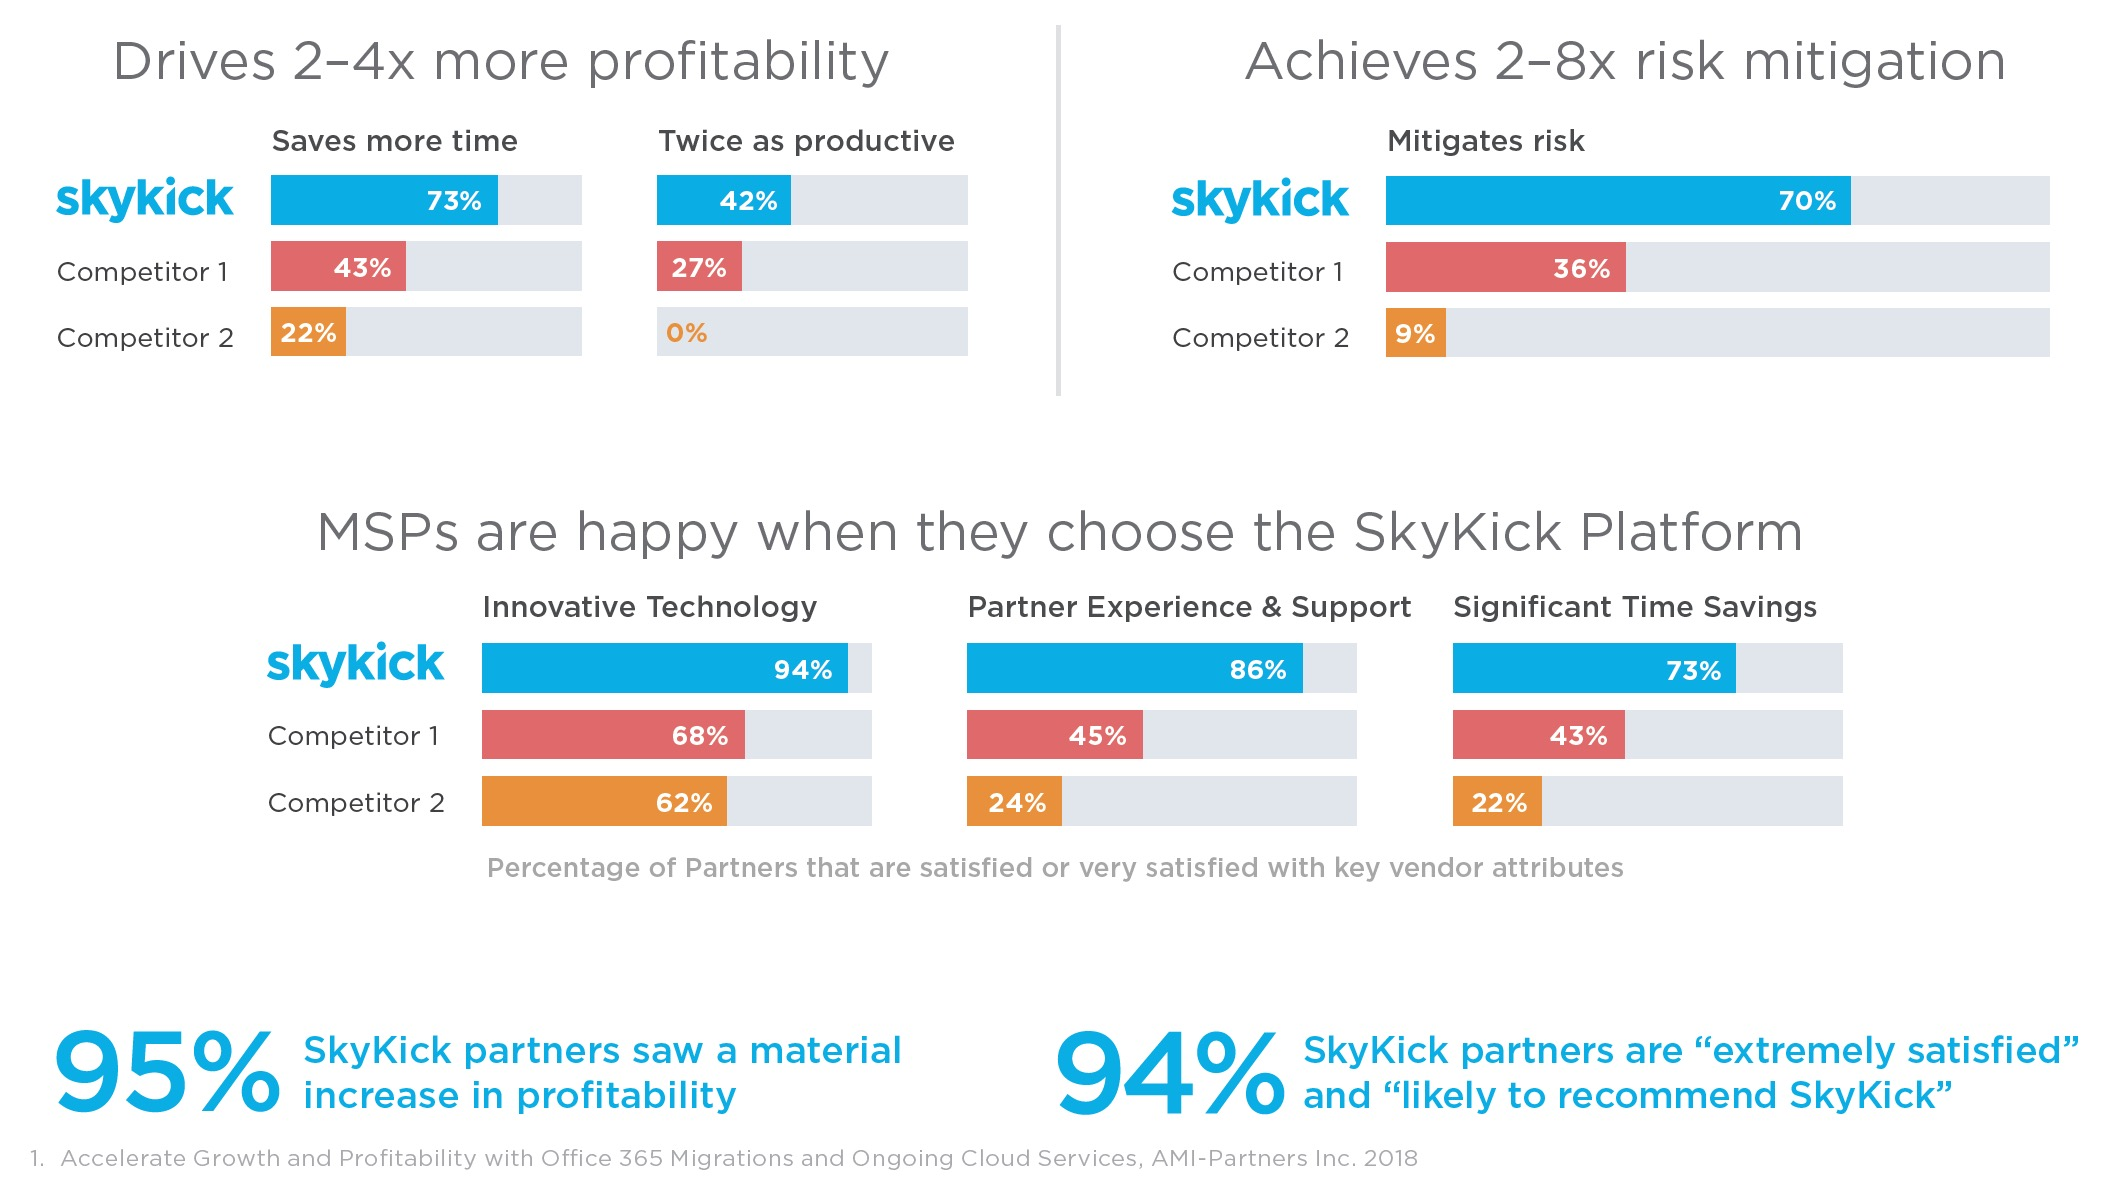 skykick-profitability-and-risk-mitigation-cloud-backup-customer-satisfaction